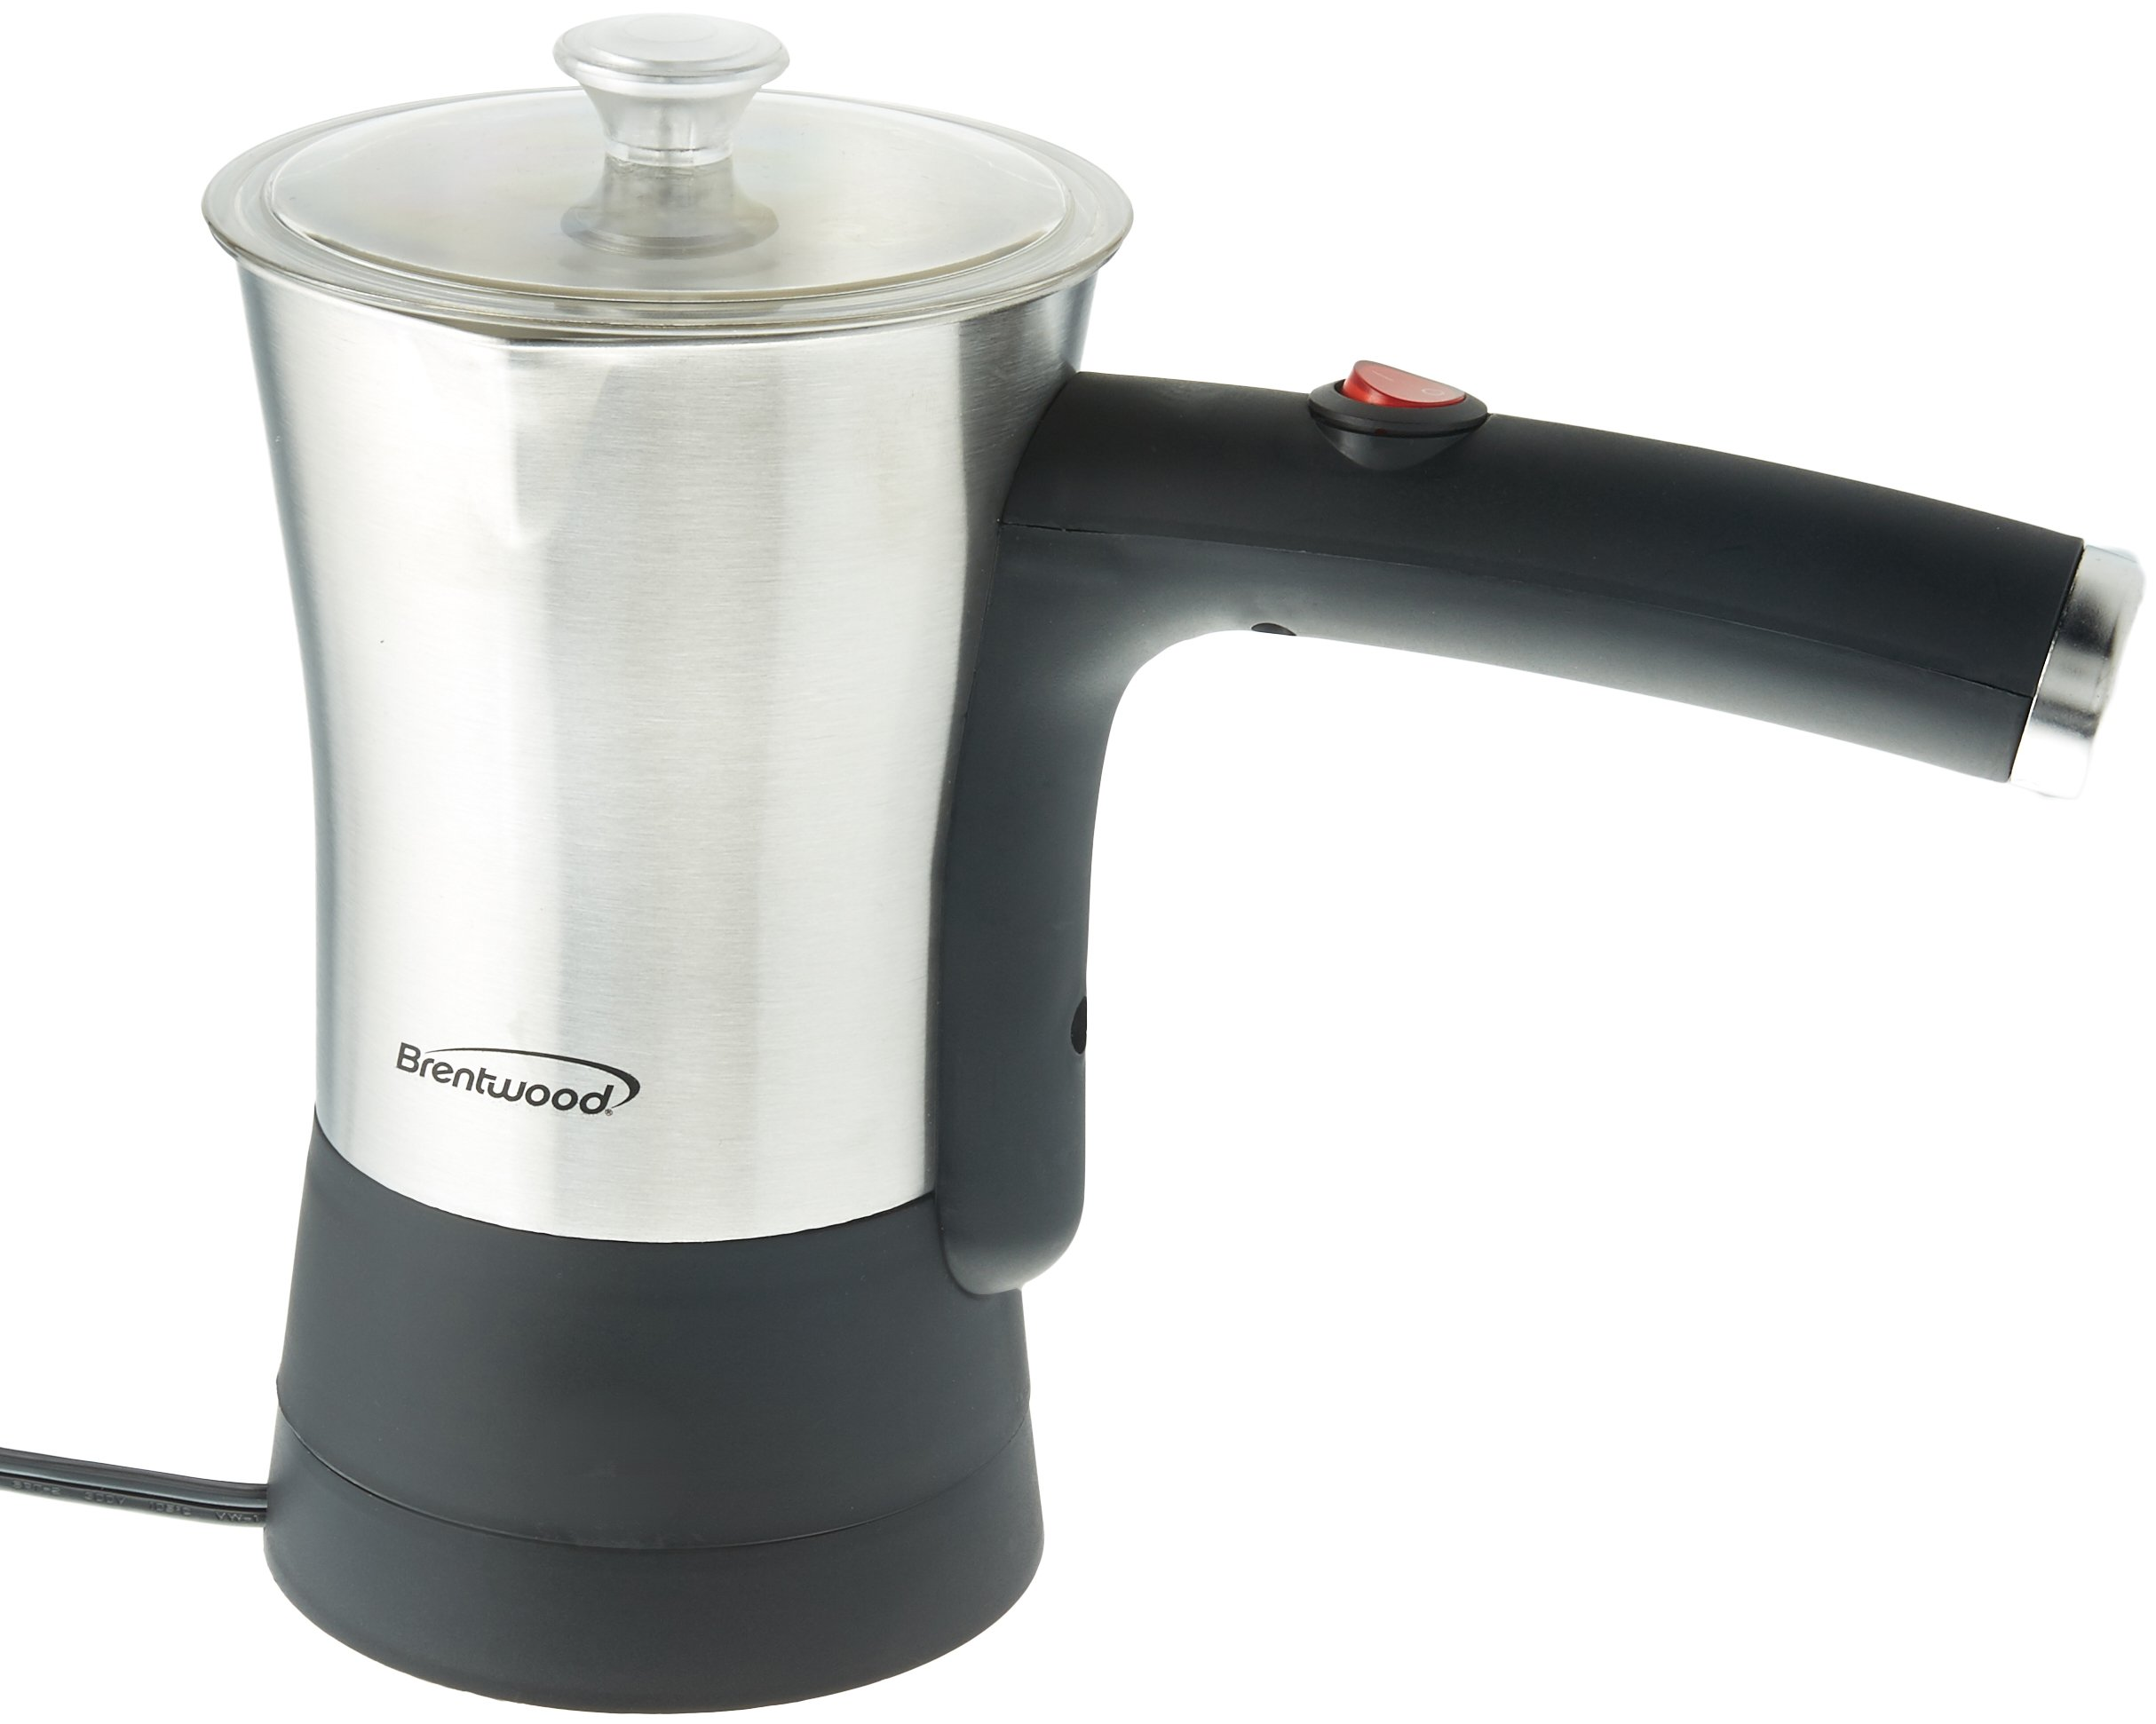 Brentwood Turkish Coffee Maker, 4-Cups, Stainless Steel by Brentwood